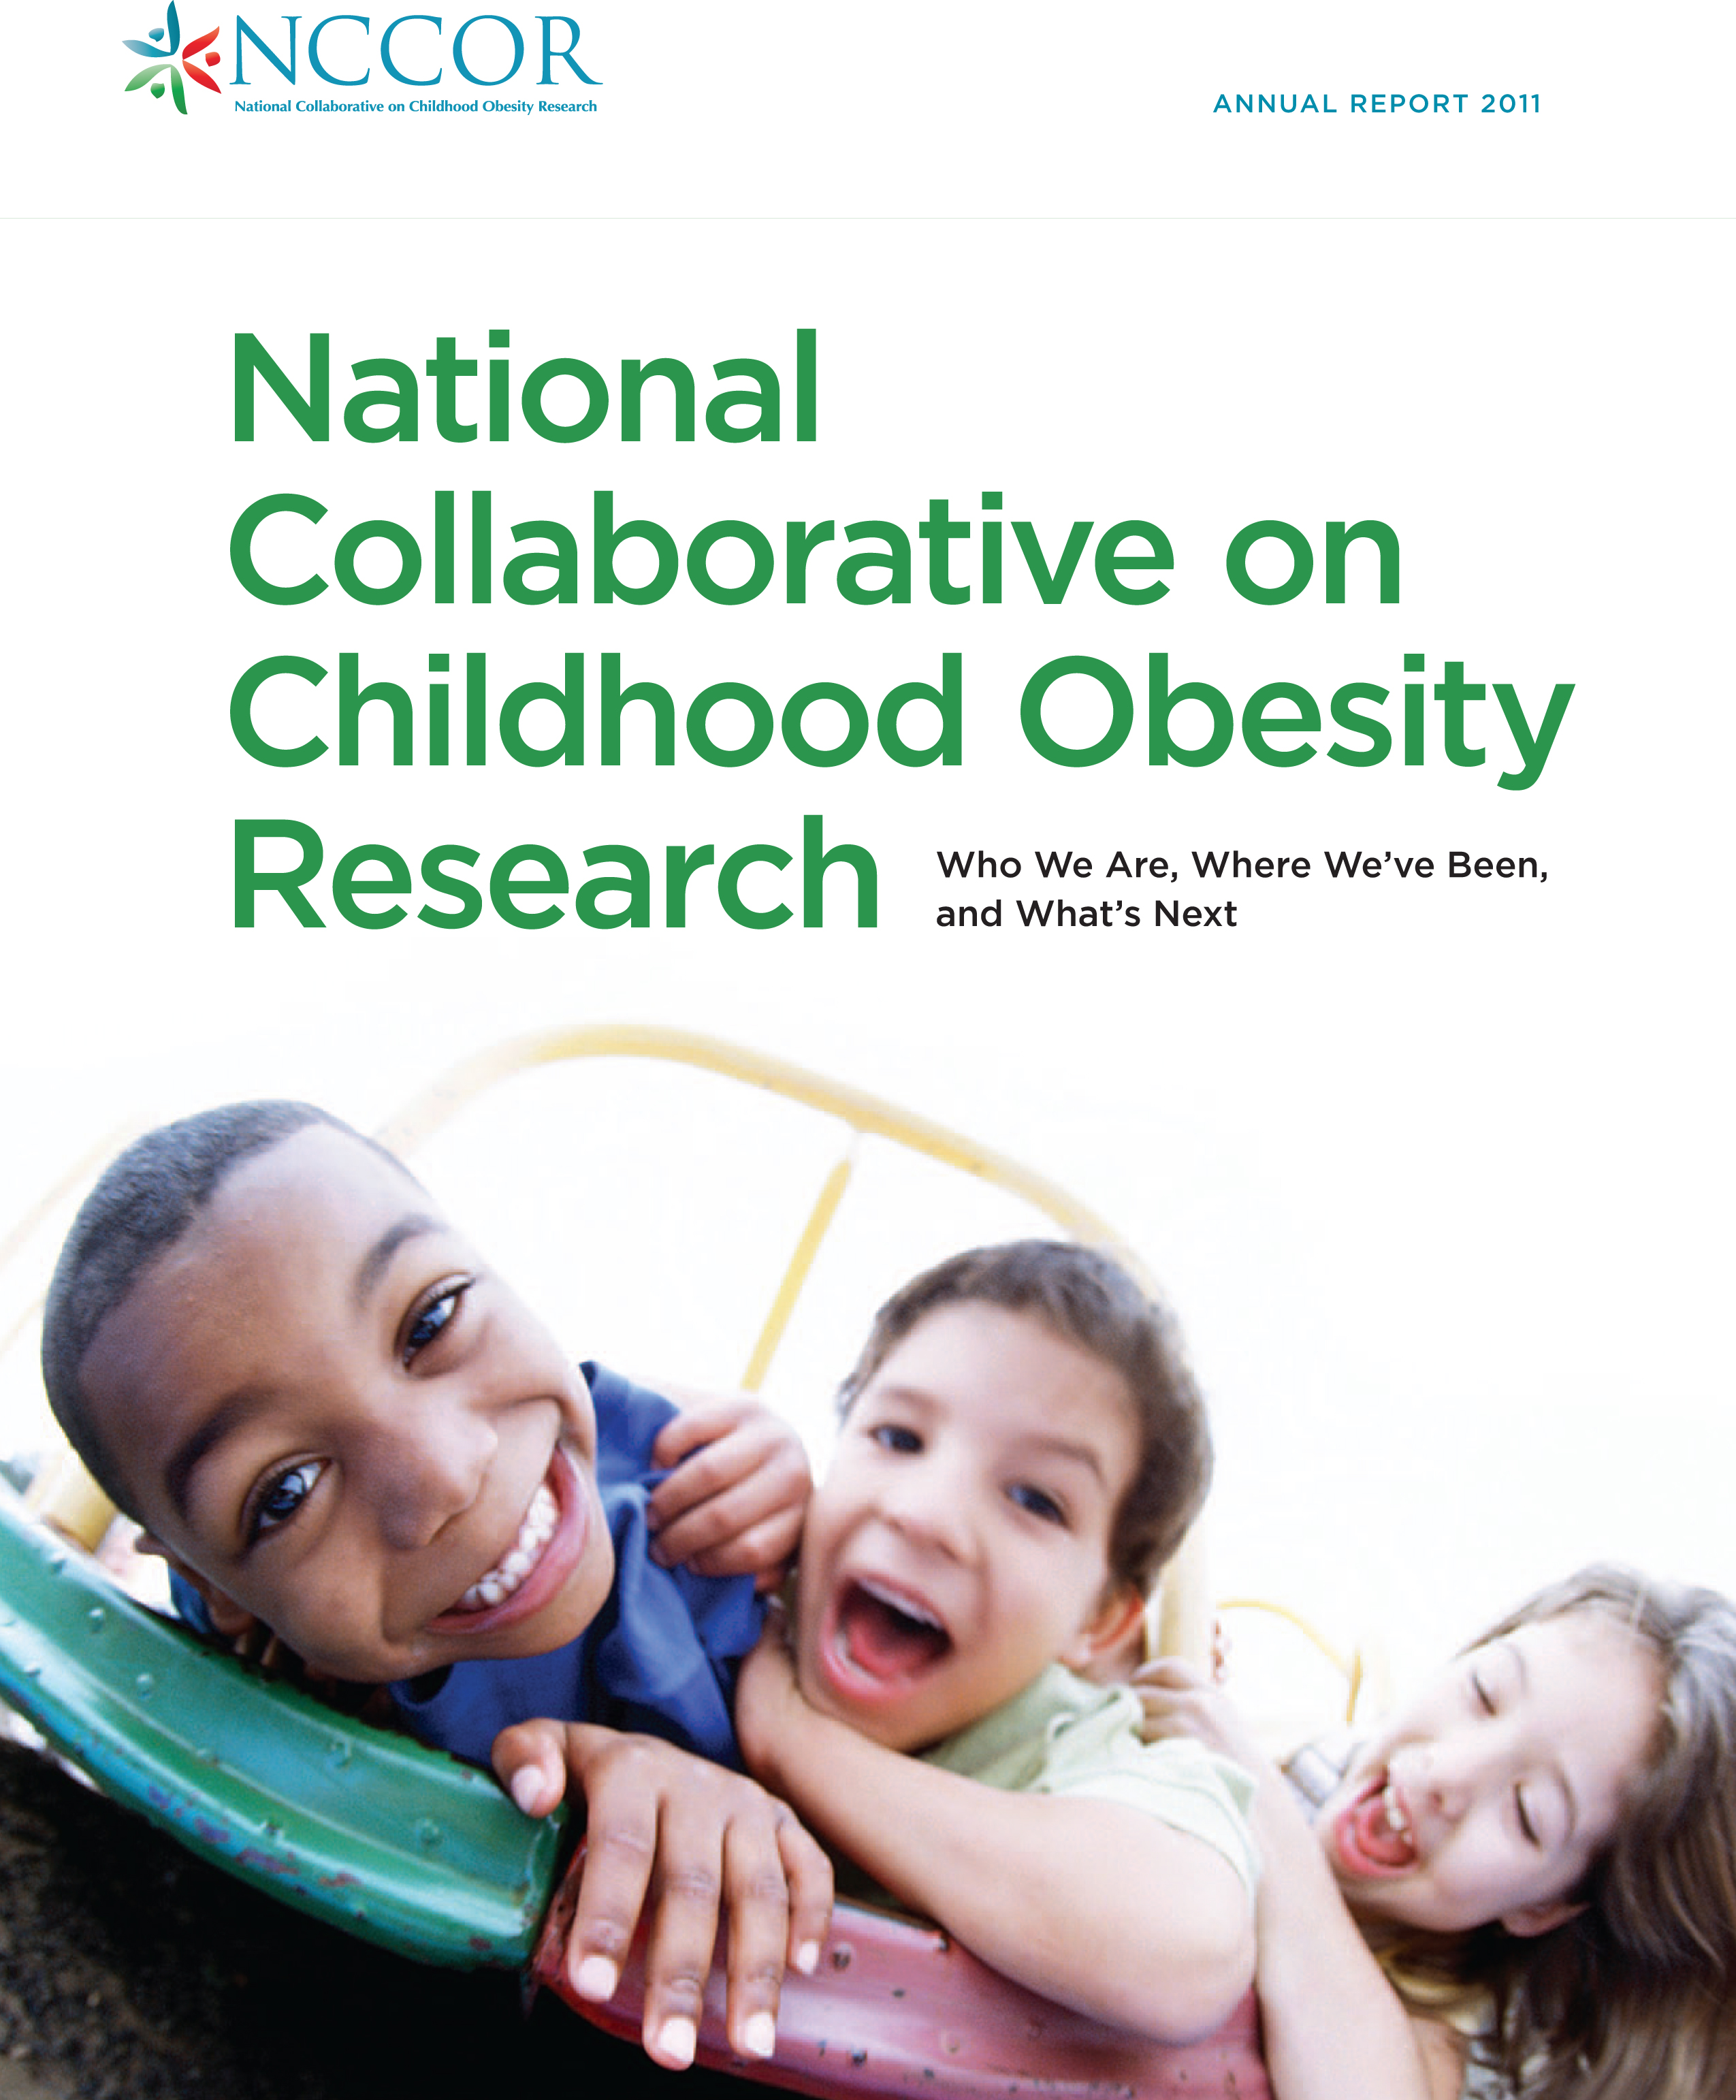 a research on childhood obesity